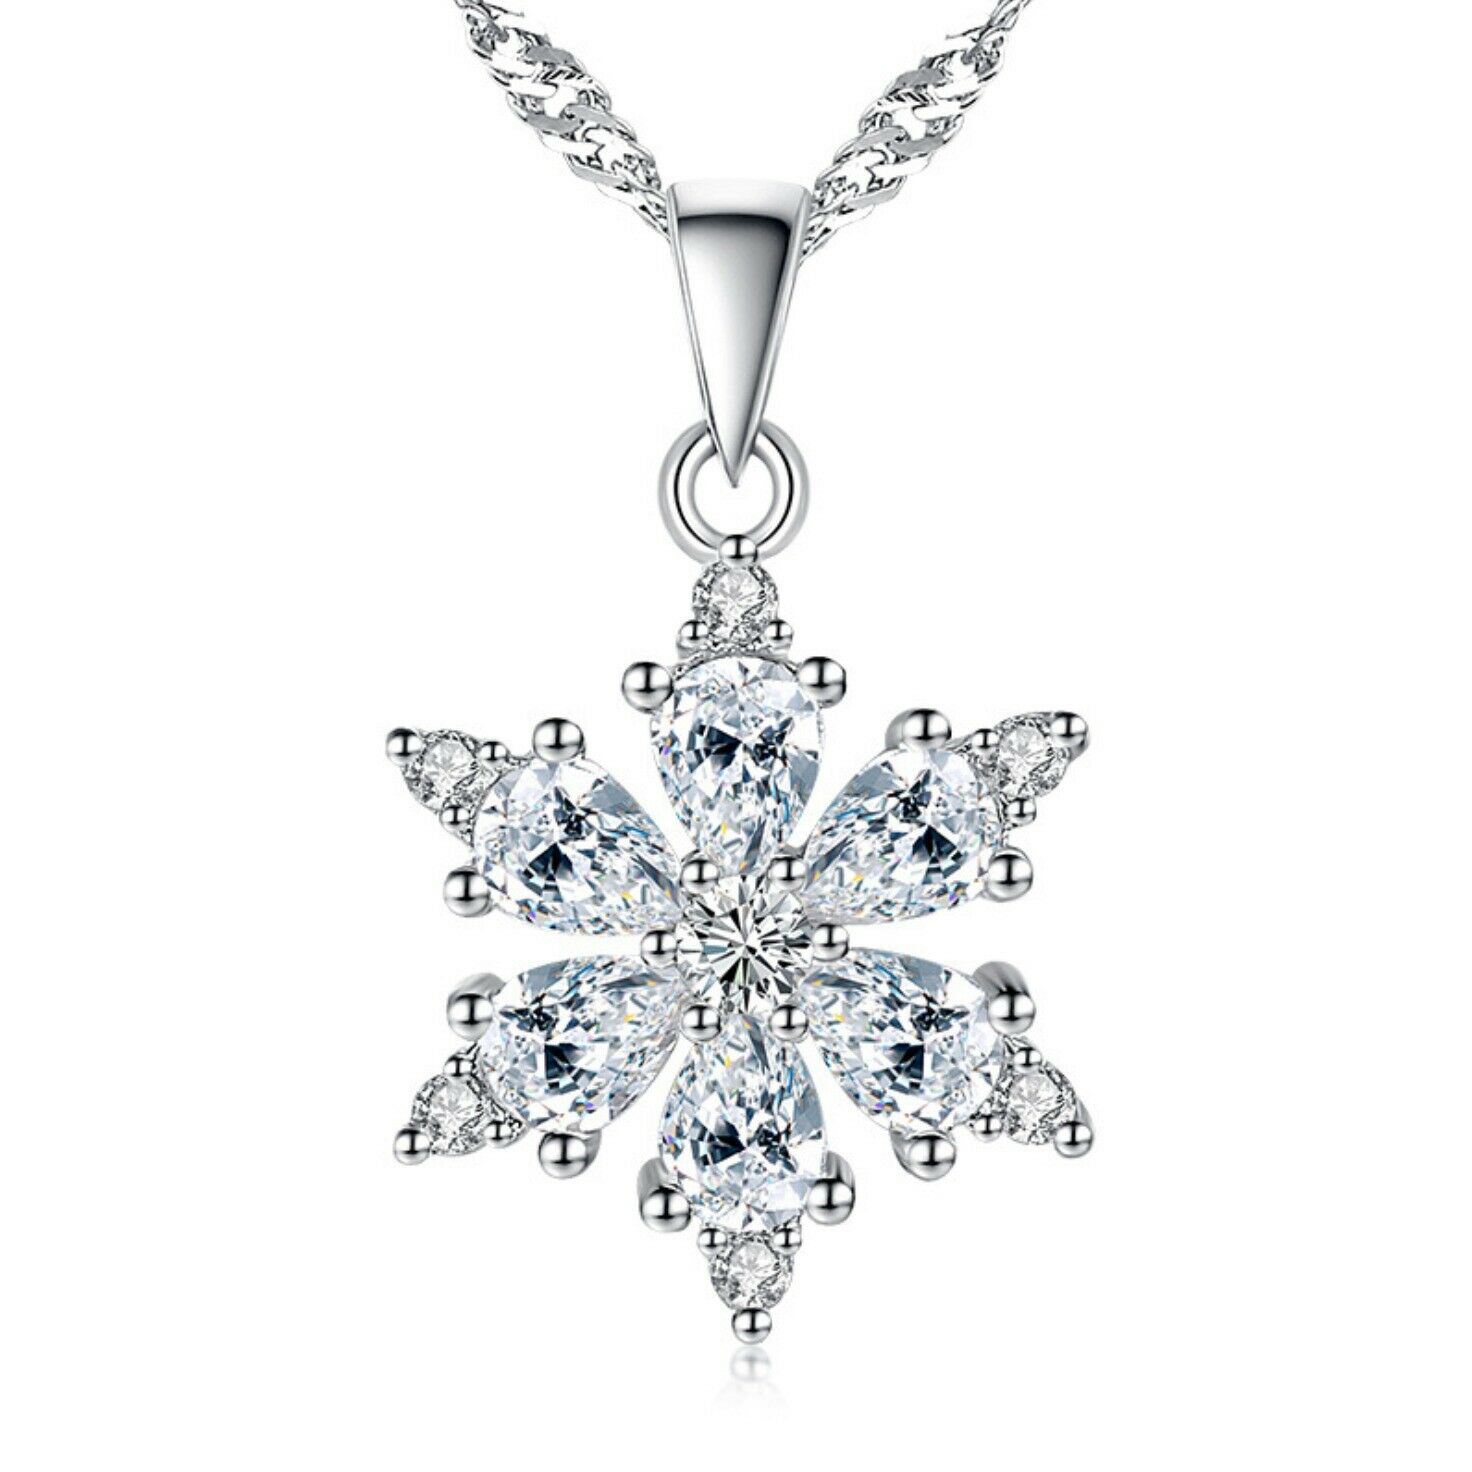 Jewellery - 925 Sterling Silver Snowflake Pendant Necklace Womens Jewellery Christmas Gift